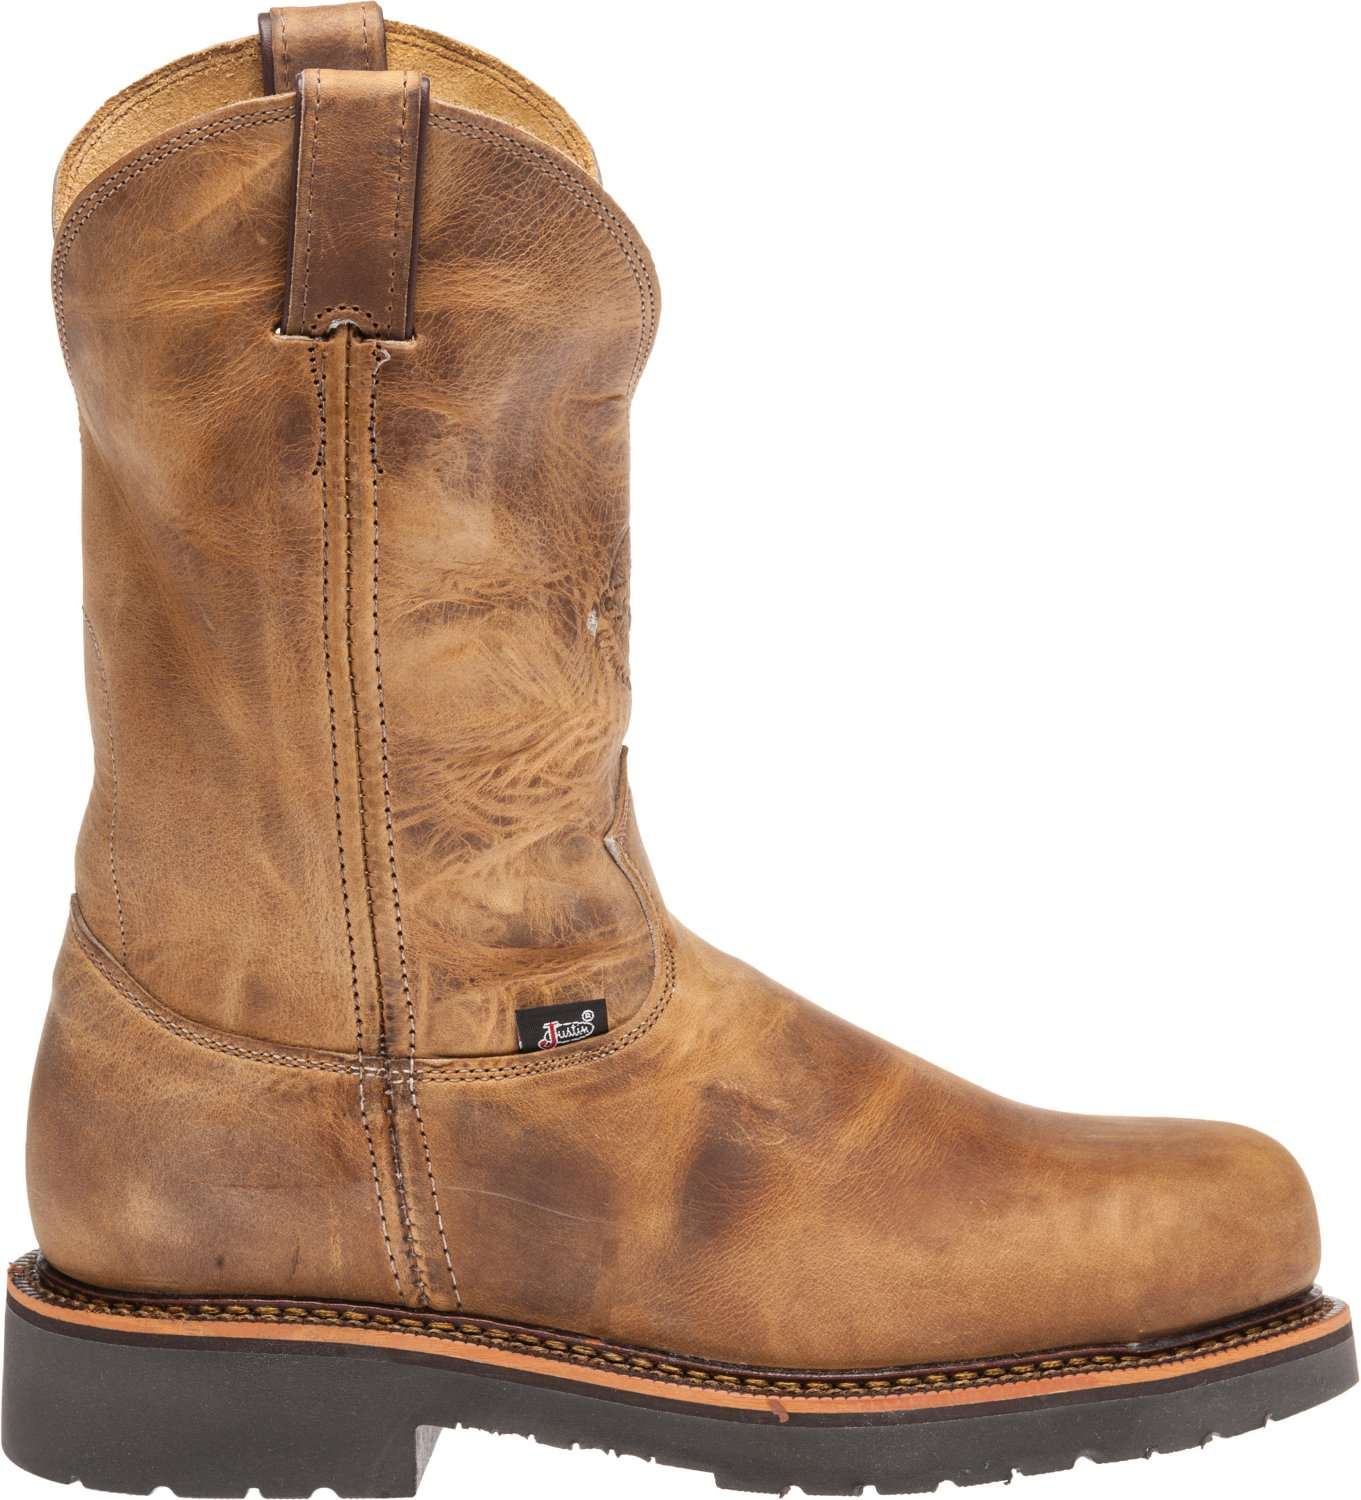 308f528088b8 Display product reviews for Justin Men s Rugged Gaucho Steel Toe Work Boots